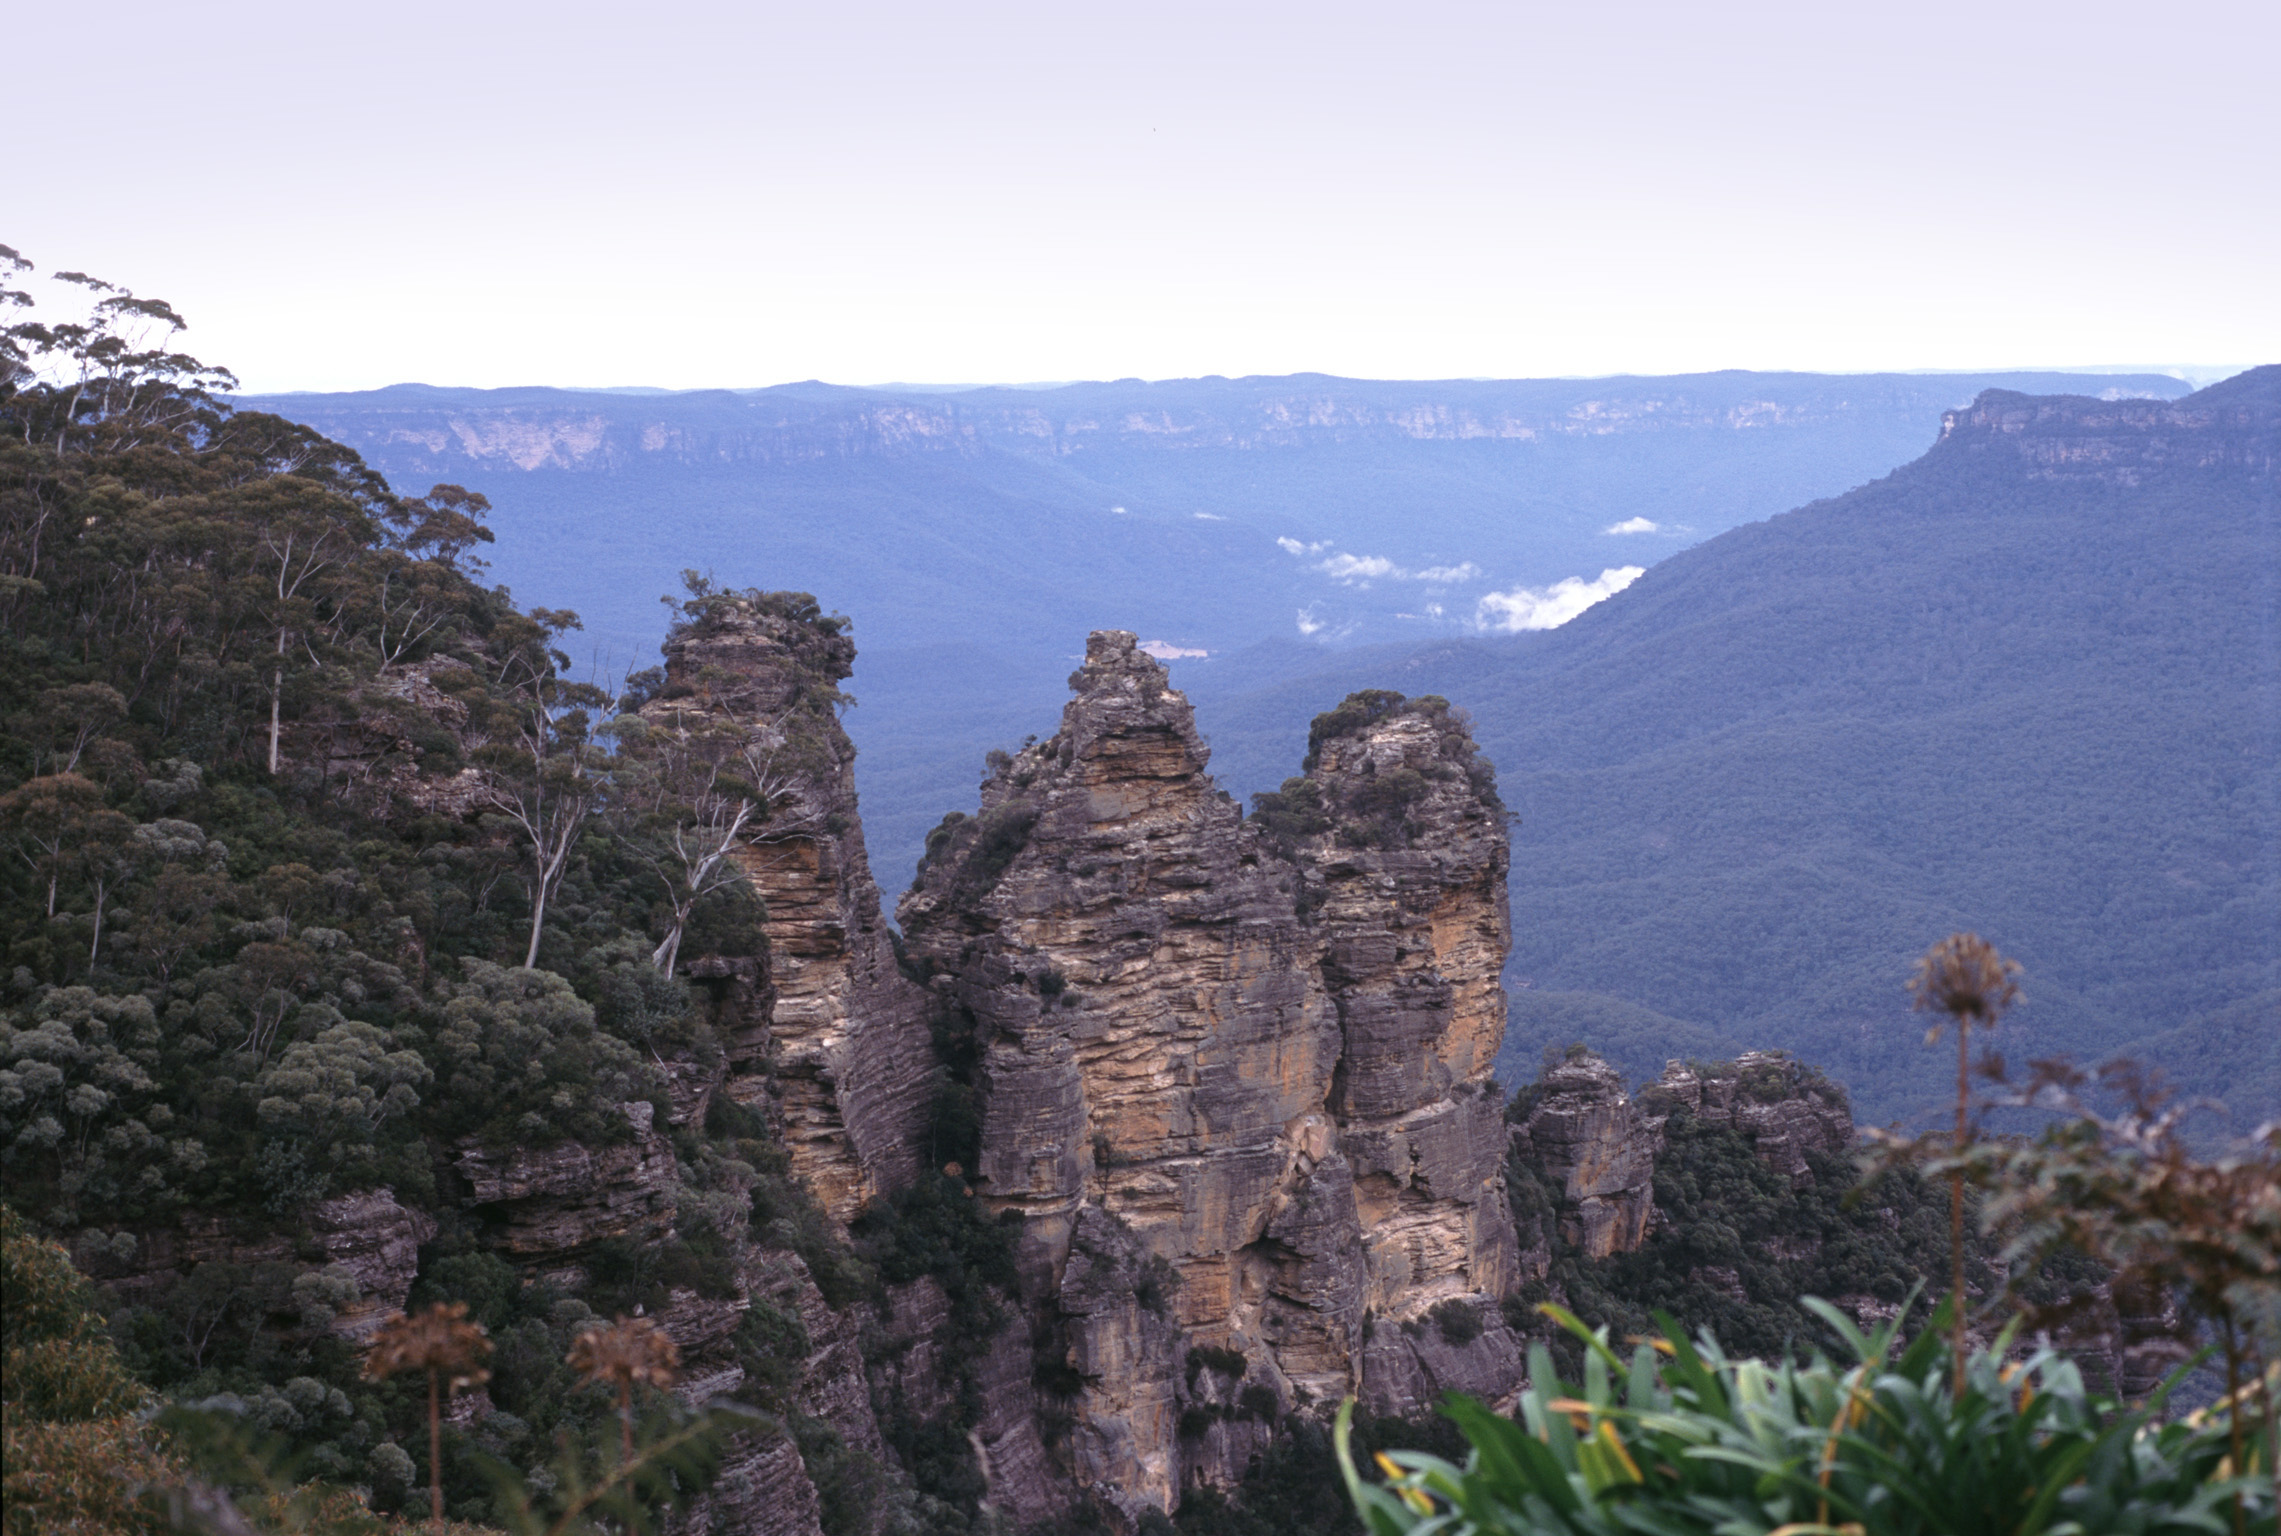 Three Sisters Rock Formation in the Blue Mountains of New South Wales, Australia. Their names are Meehni, Wimlah, and Gunnedoo